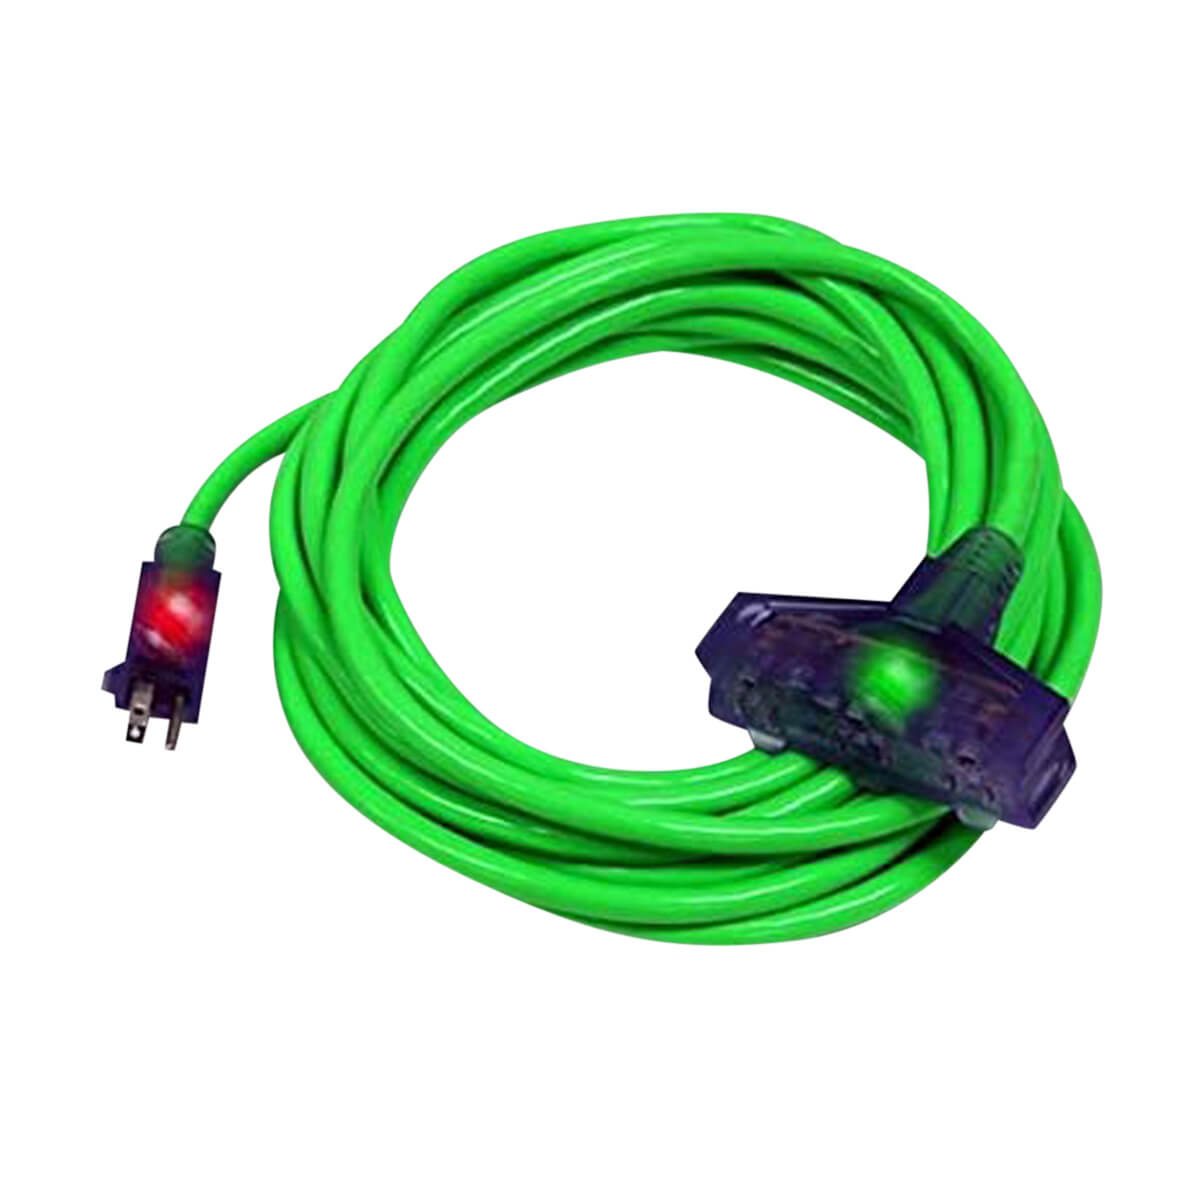 Pro Glo® Extension Cord 100' - Green